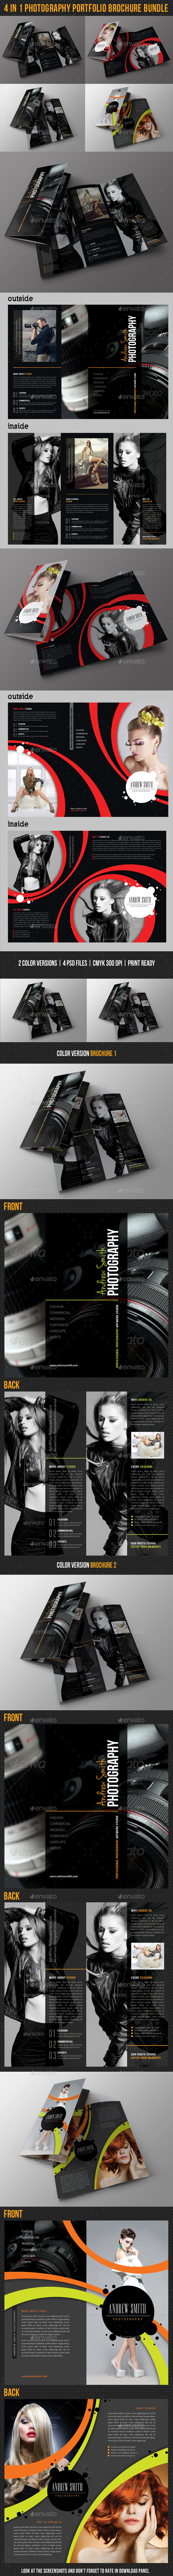 4 in 1 Photography Portfolio Brochure Bundle 02 - Portfolio Brochures